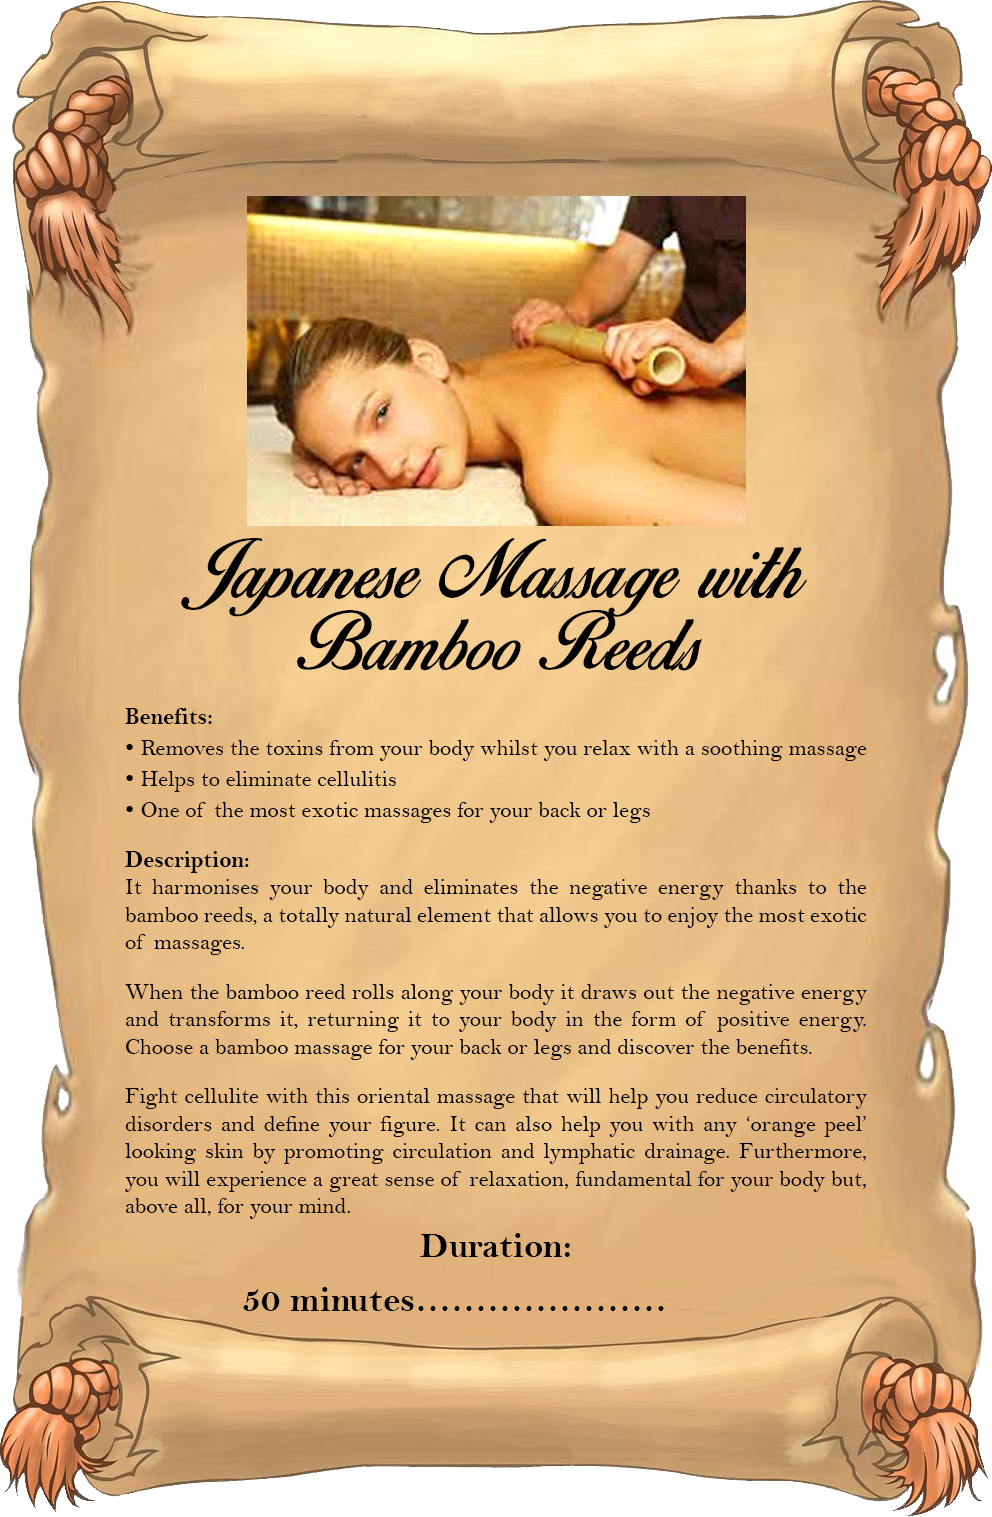 Japanese_Massage_with_Bamboo_Reeds[1]